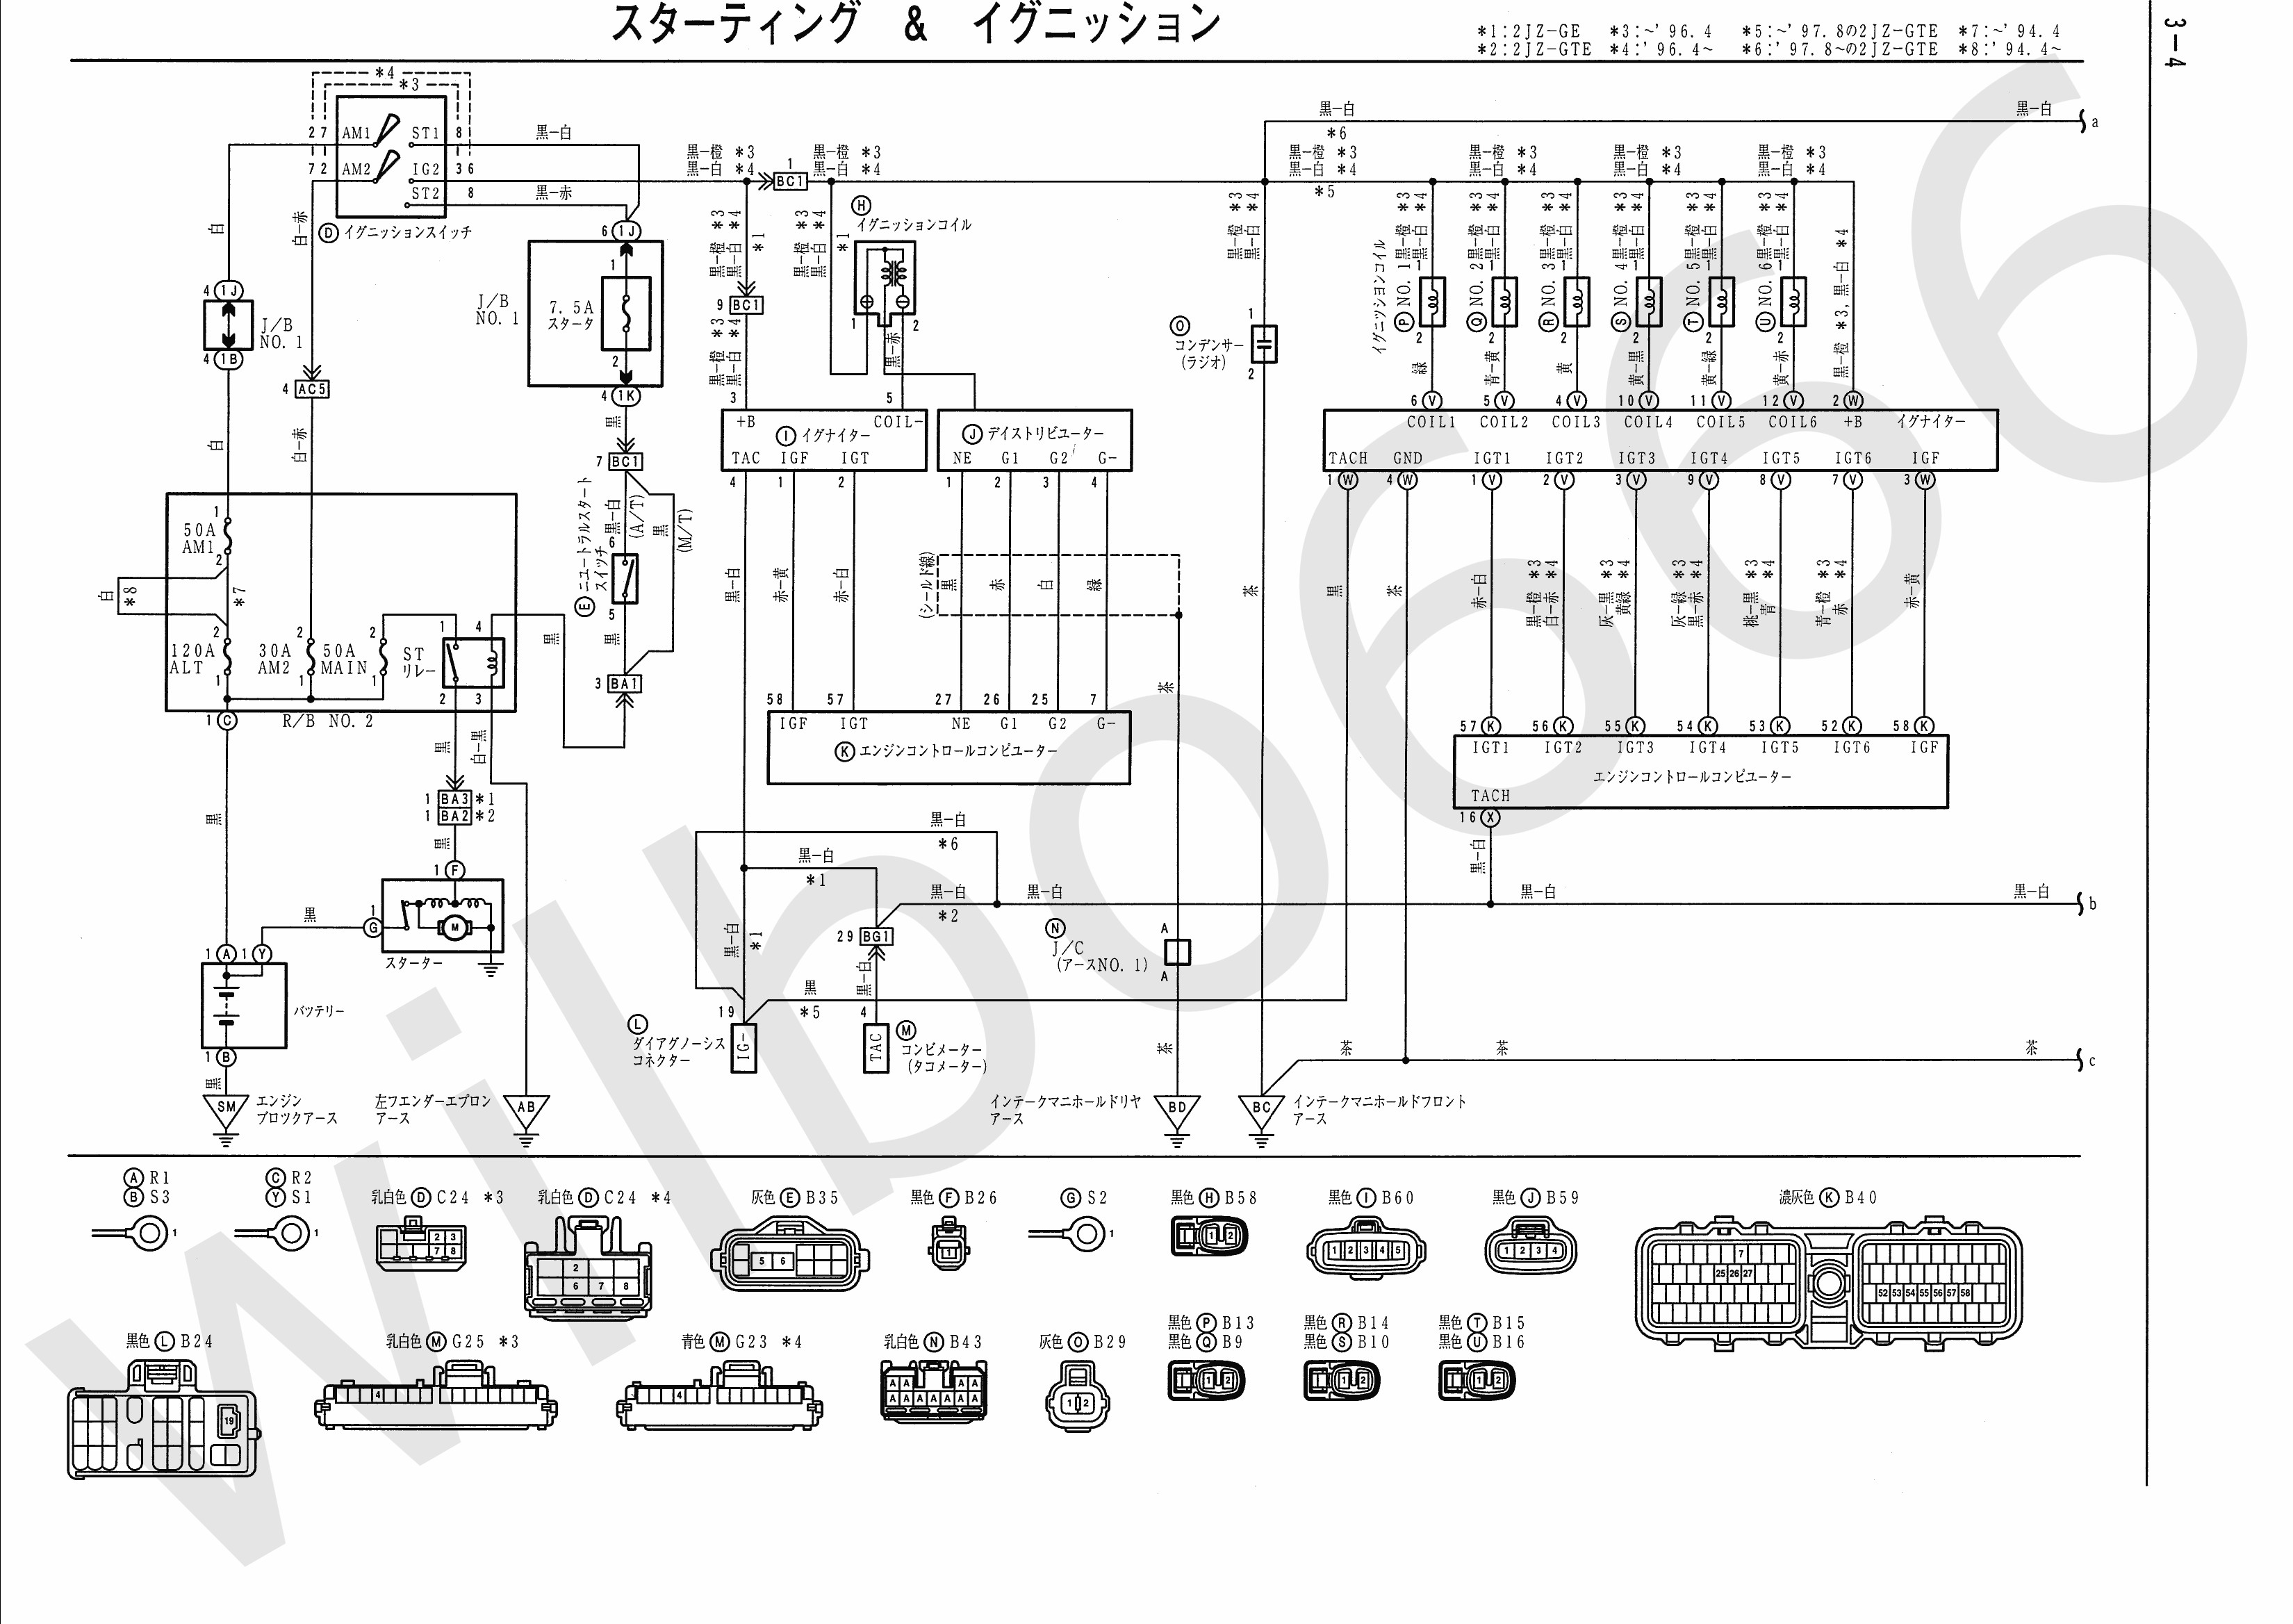 C13 and C14 Wiring Diagrams Wilbo666 2jz Ge Jza80 Supra Engine Wiring Of C13 and C14 Wiring Diagrams